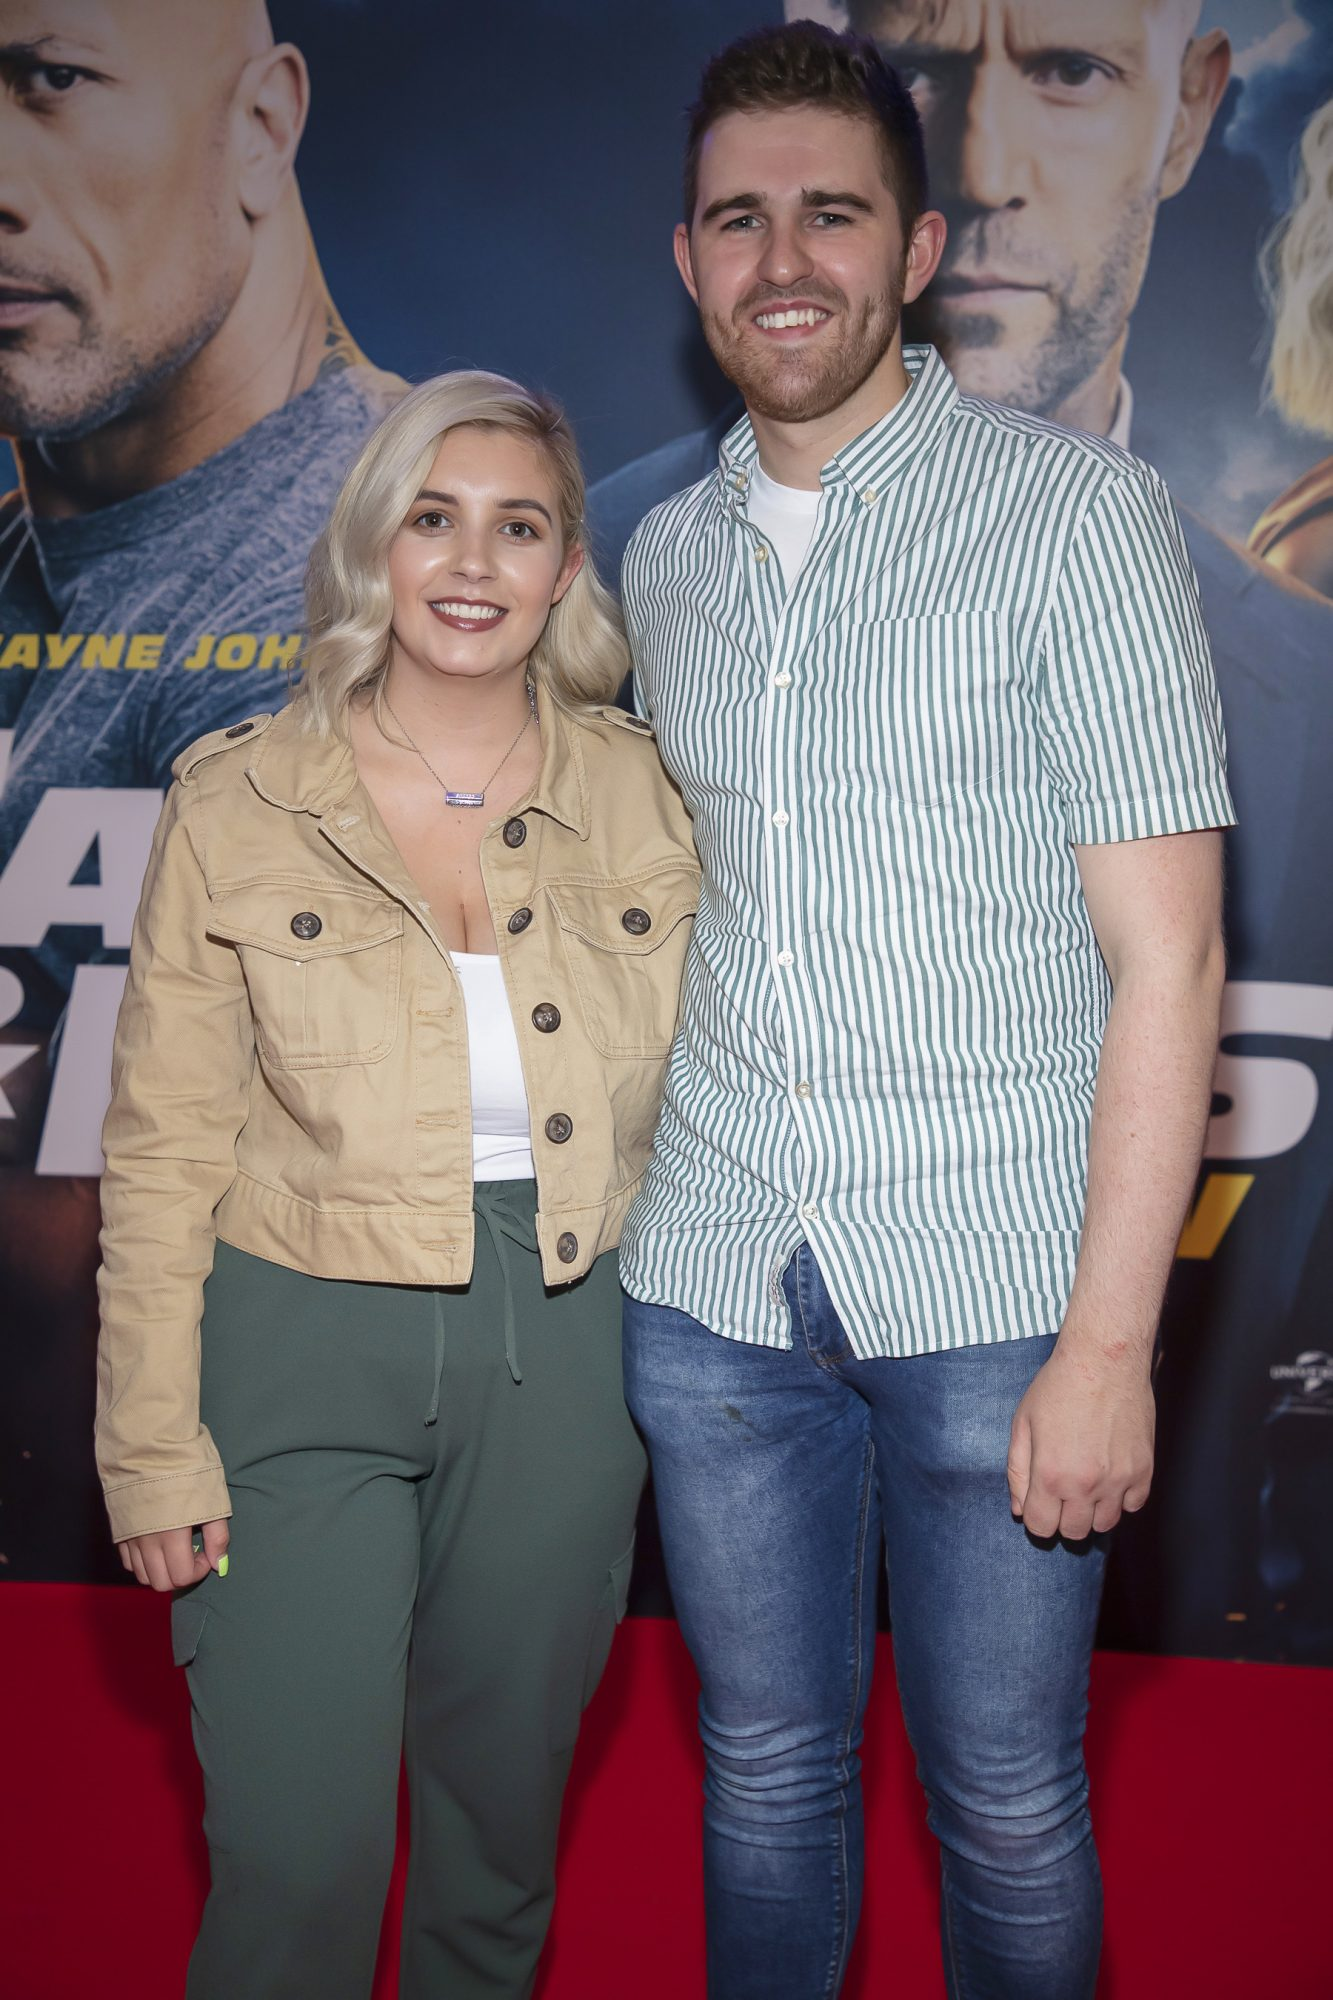 Chelsea Flanagan & Keith Gribbin pictured at a special preview screening of Fast & Furious Presents: Hobbs & Shaw. Photo: Anthony Woods